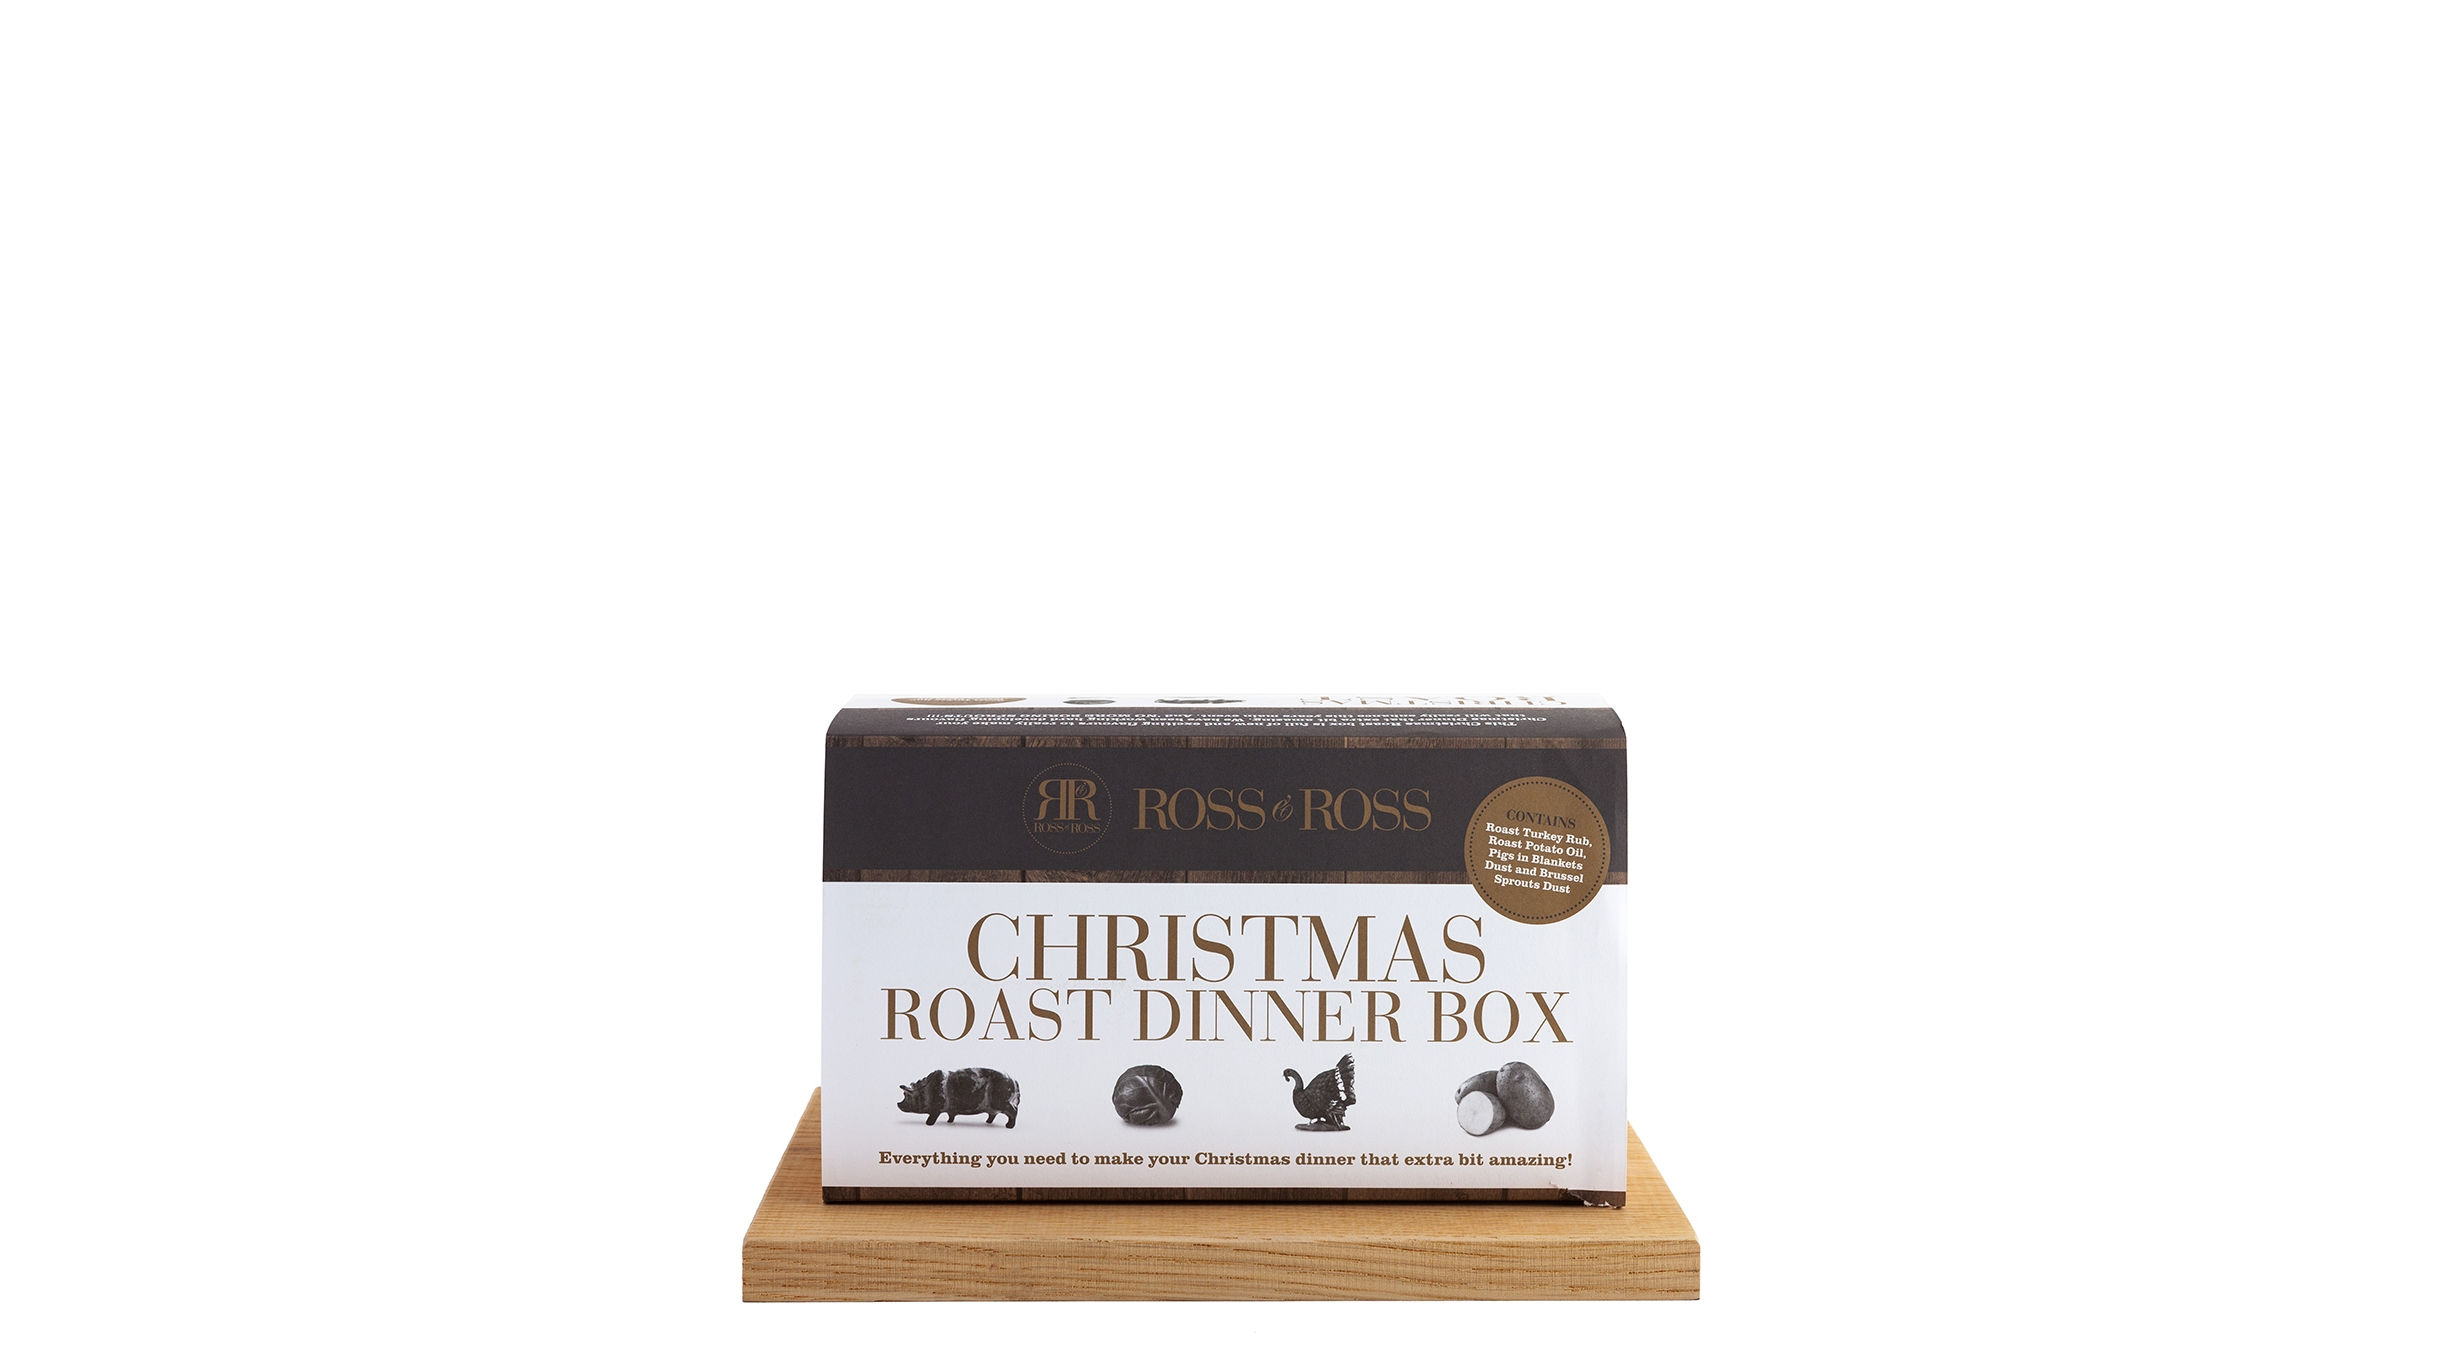 Ross & Ross Christmas Roast Dinner Box - Harvey Nichols